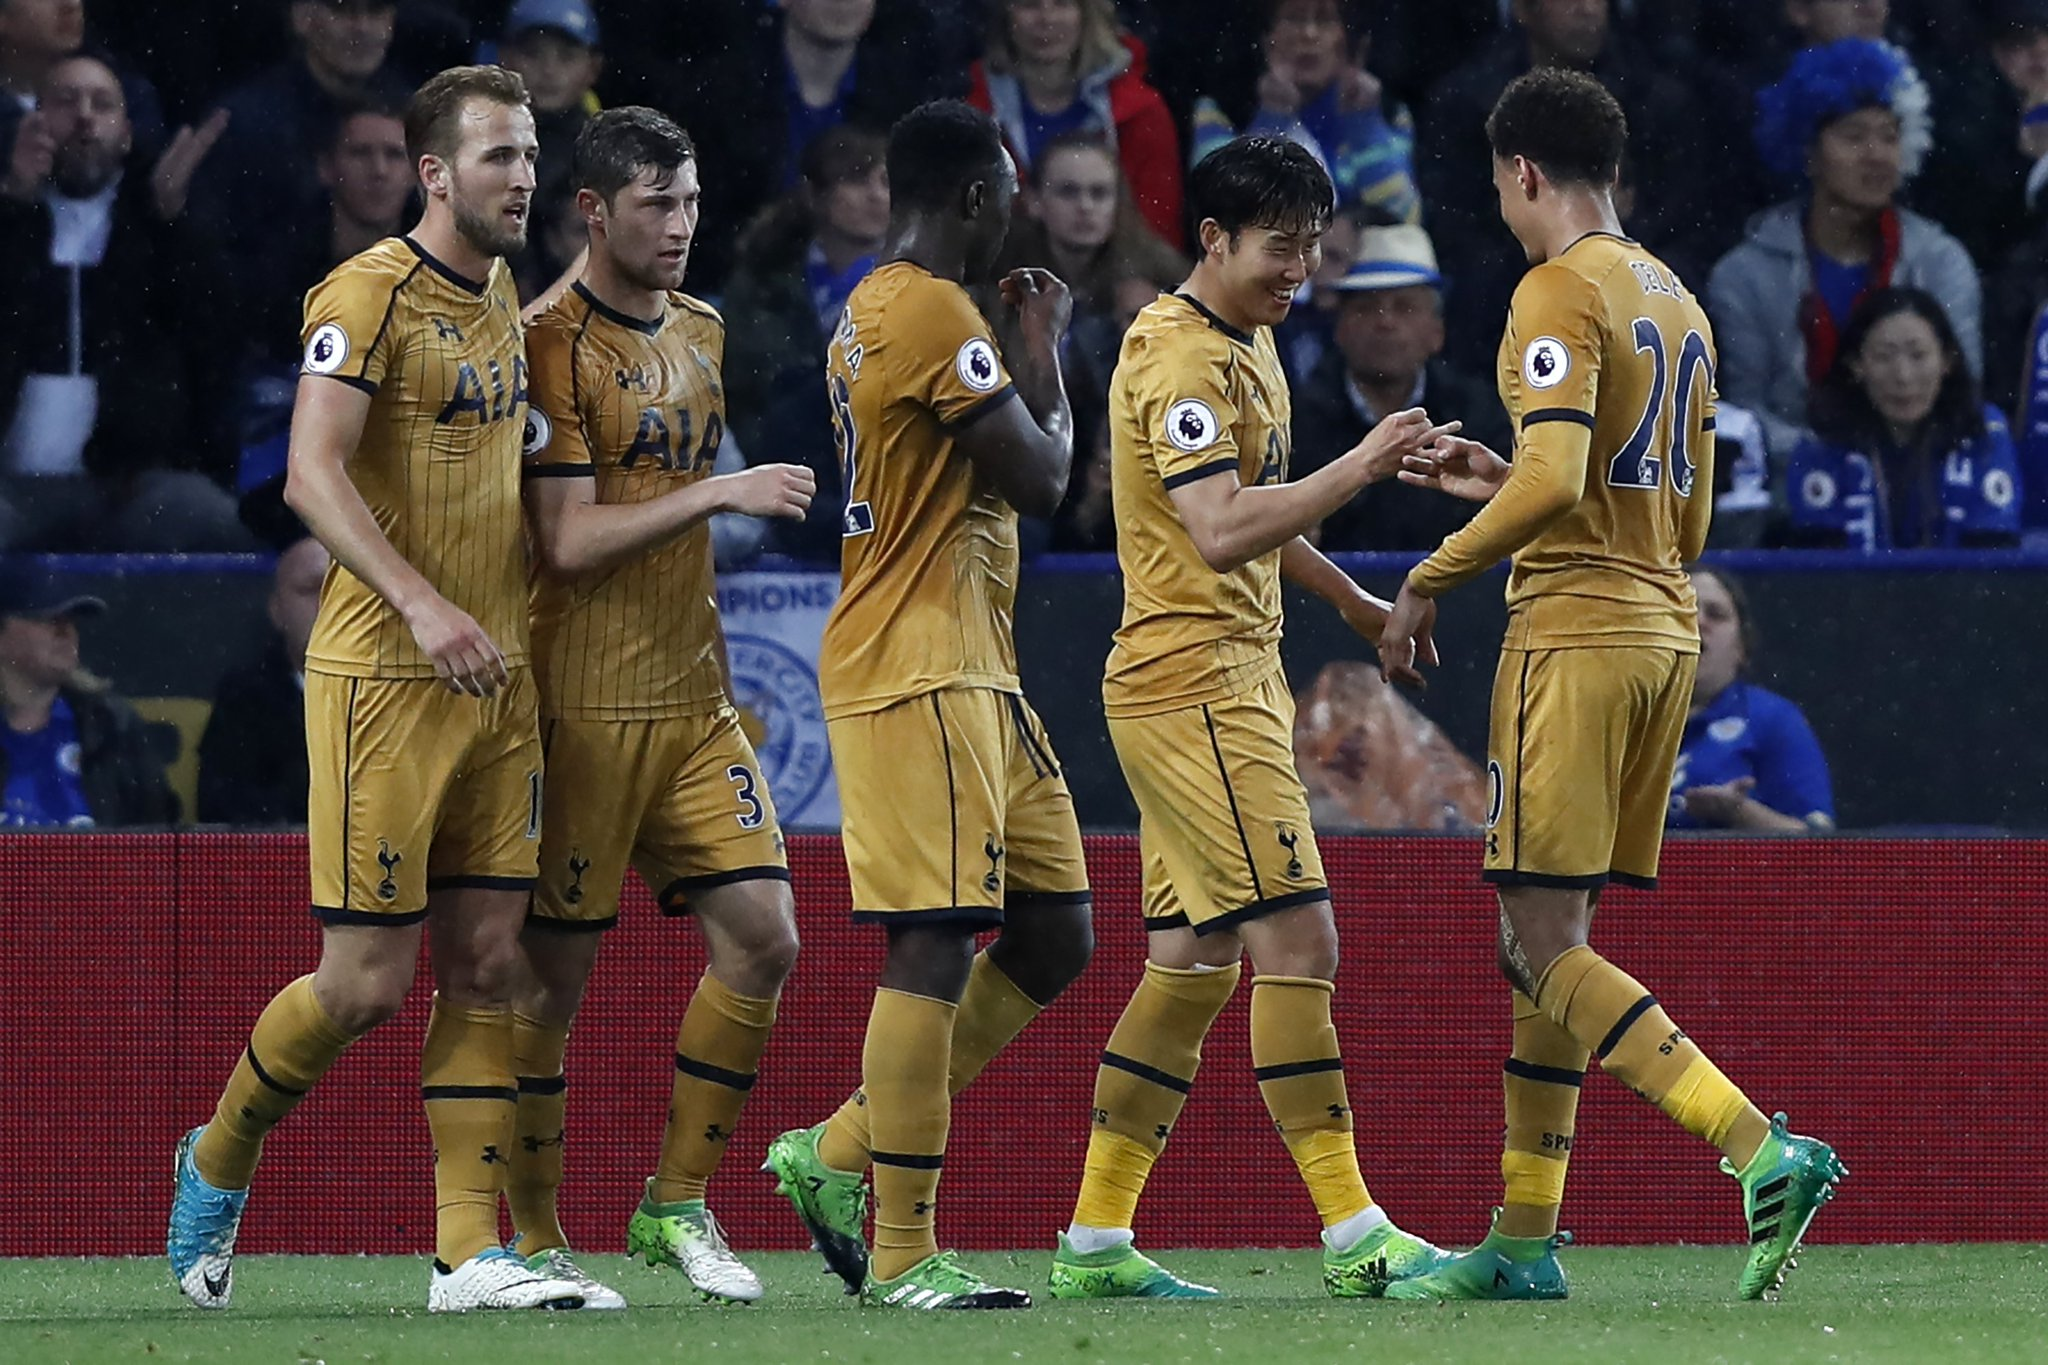 Leicester 1-6 Tottenham: Harry Kane nets four as Spurs thrash Foxes